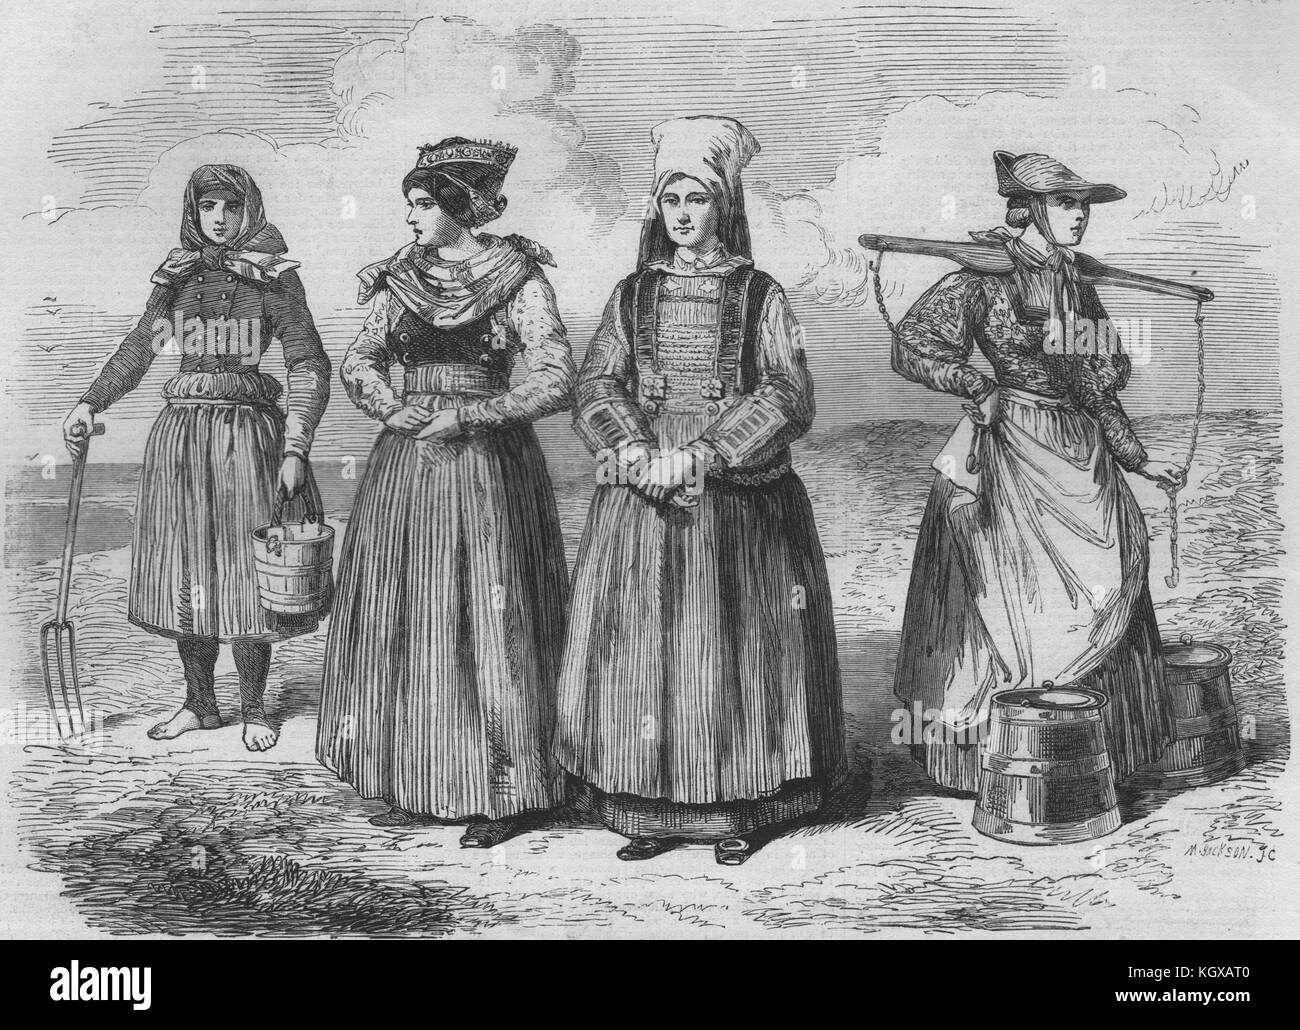 Schleswig ladies costumes Blavand's Bay Fohr Ostenfellt Dannevirke 1864. The Illustrated London News - Stock Image